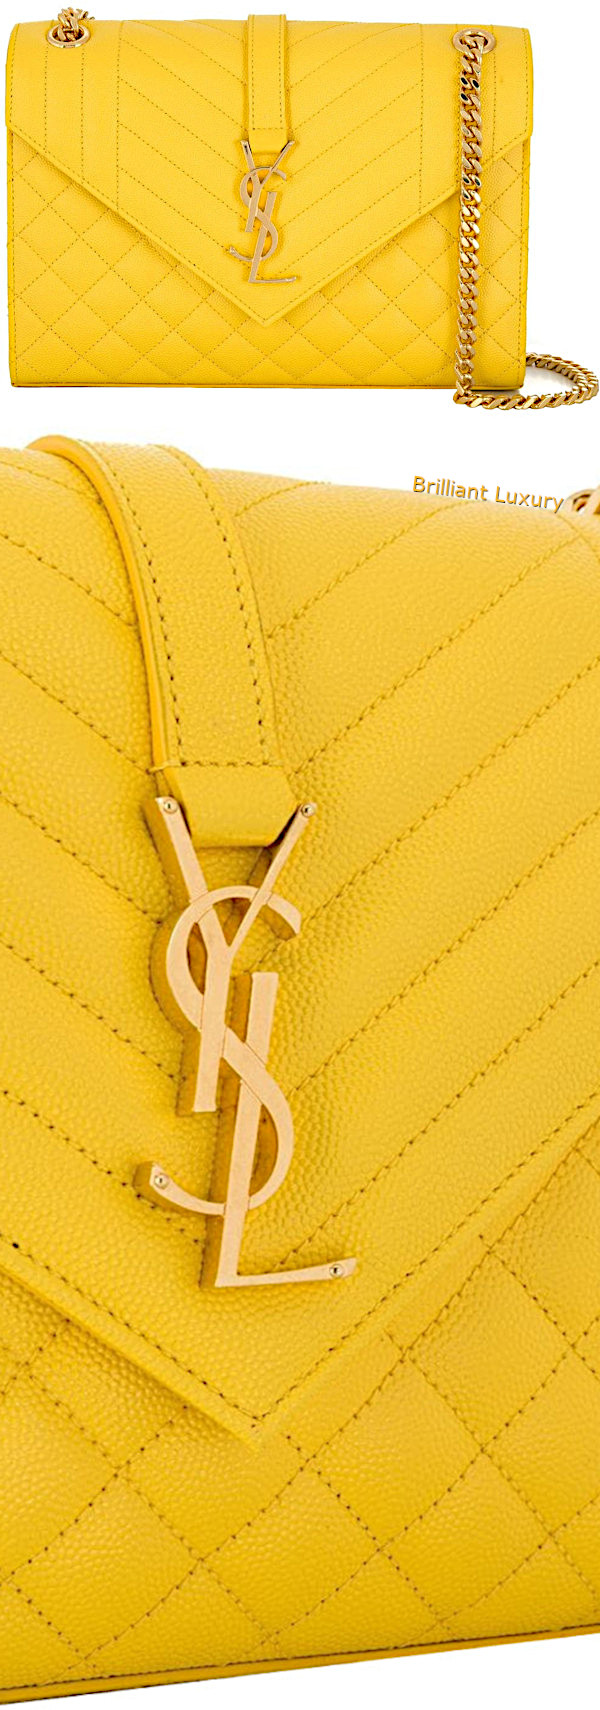 Saint Laurent Envelope medium shoulder bag in yellow